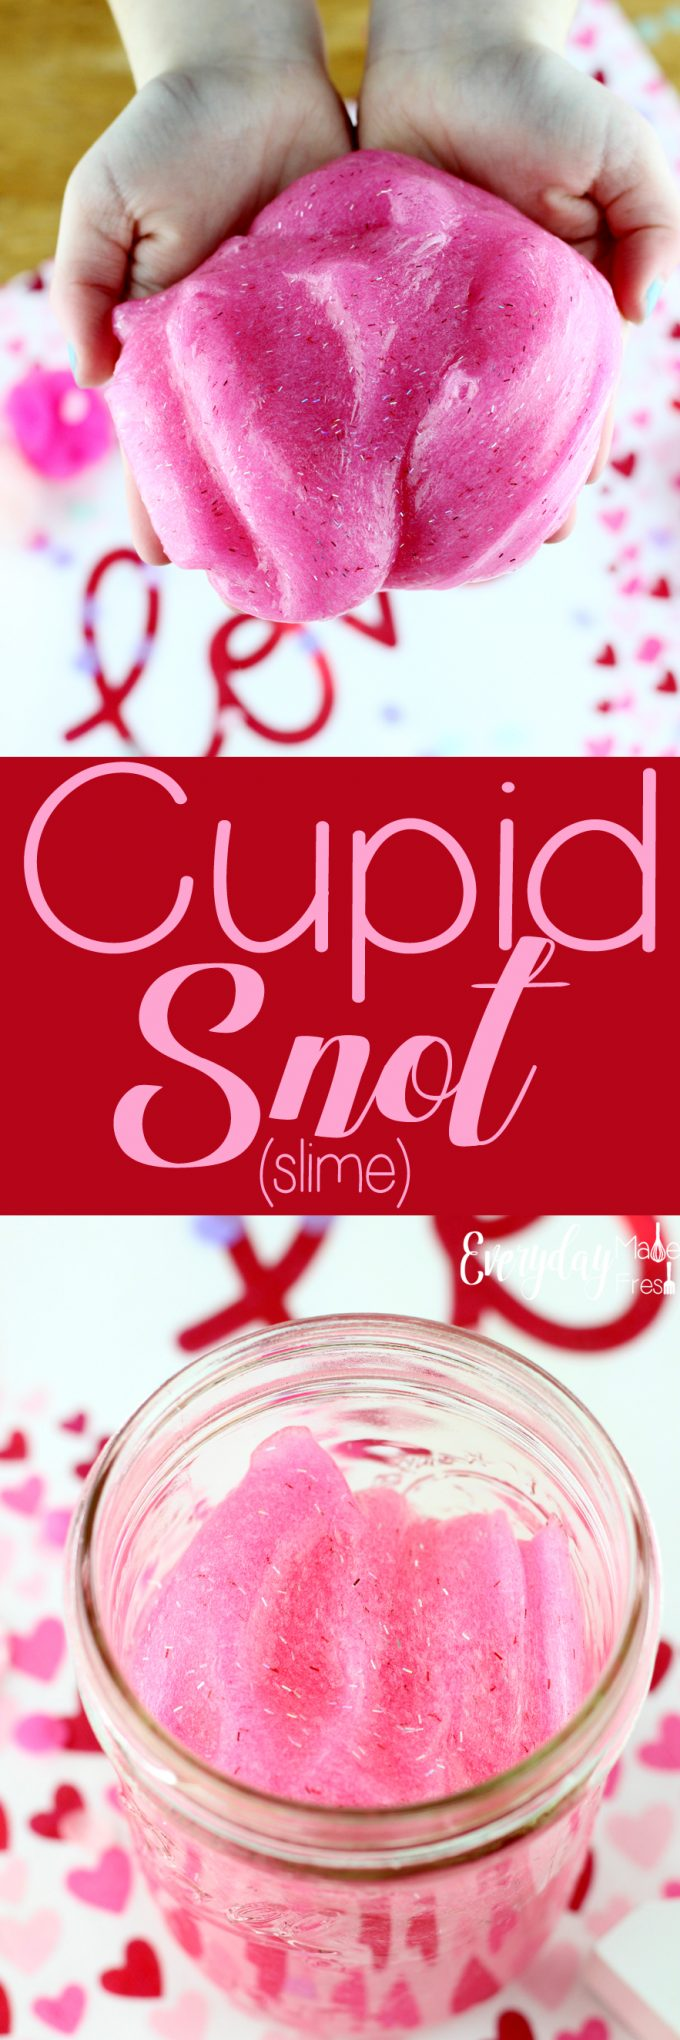 A simple 3-ingredient slime base is what is used for this Cupid Snot (Slime). It's the simplest and most fool proof way to make slime. | EverydayMadeFresh.com